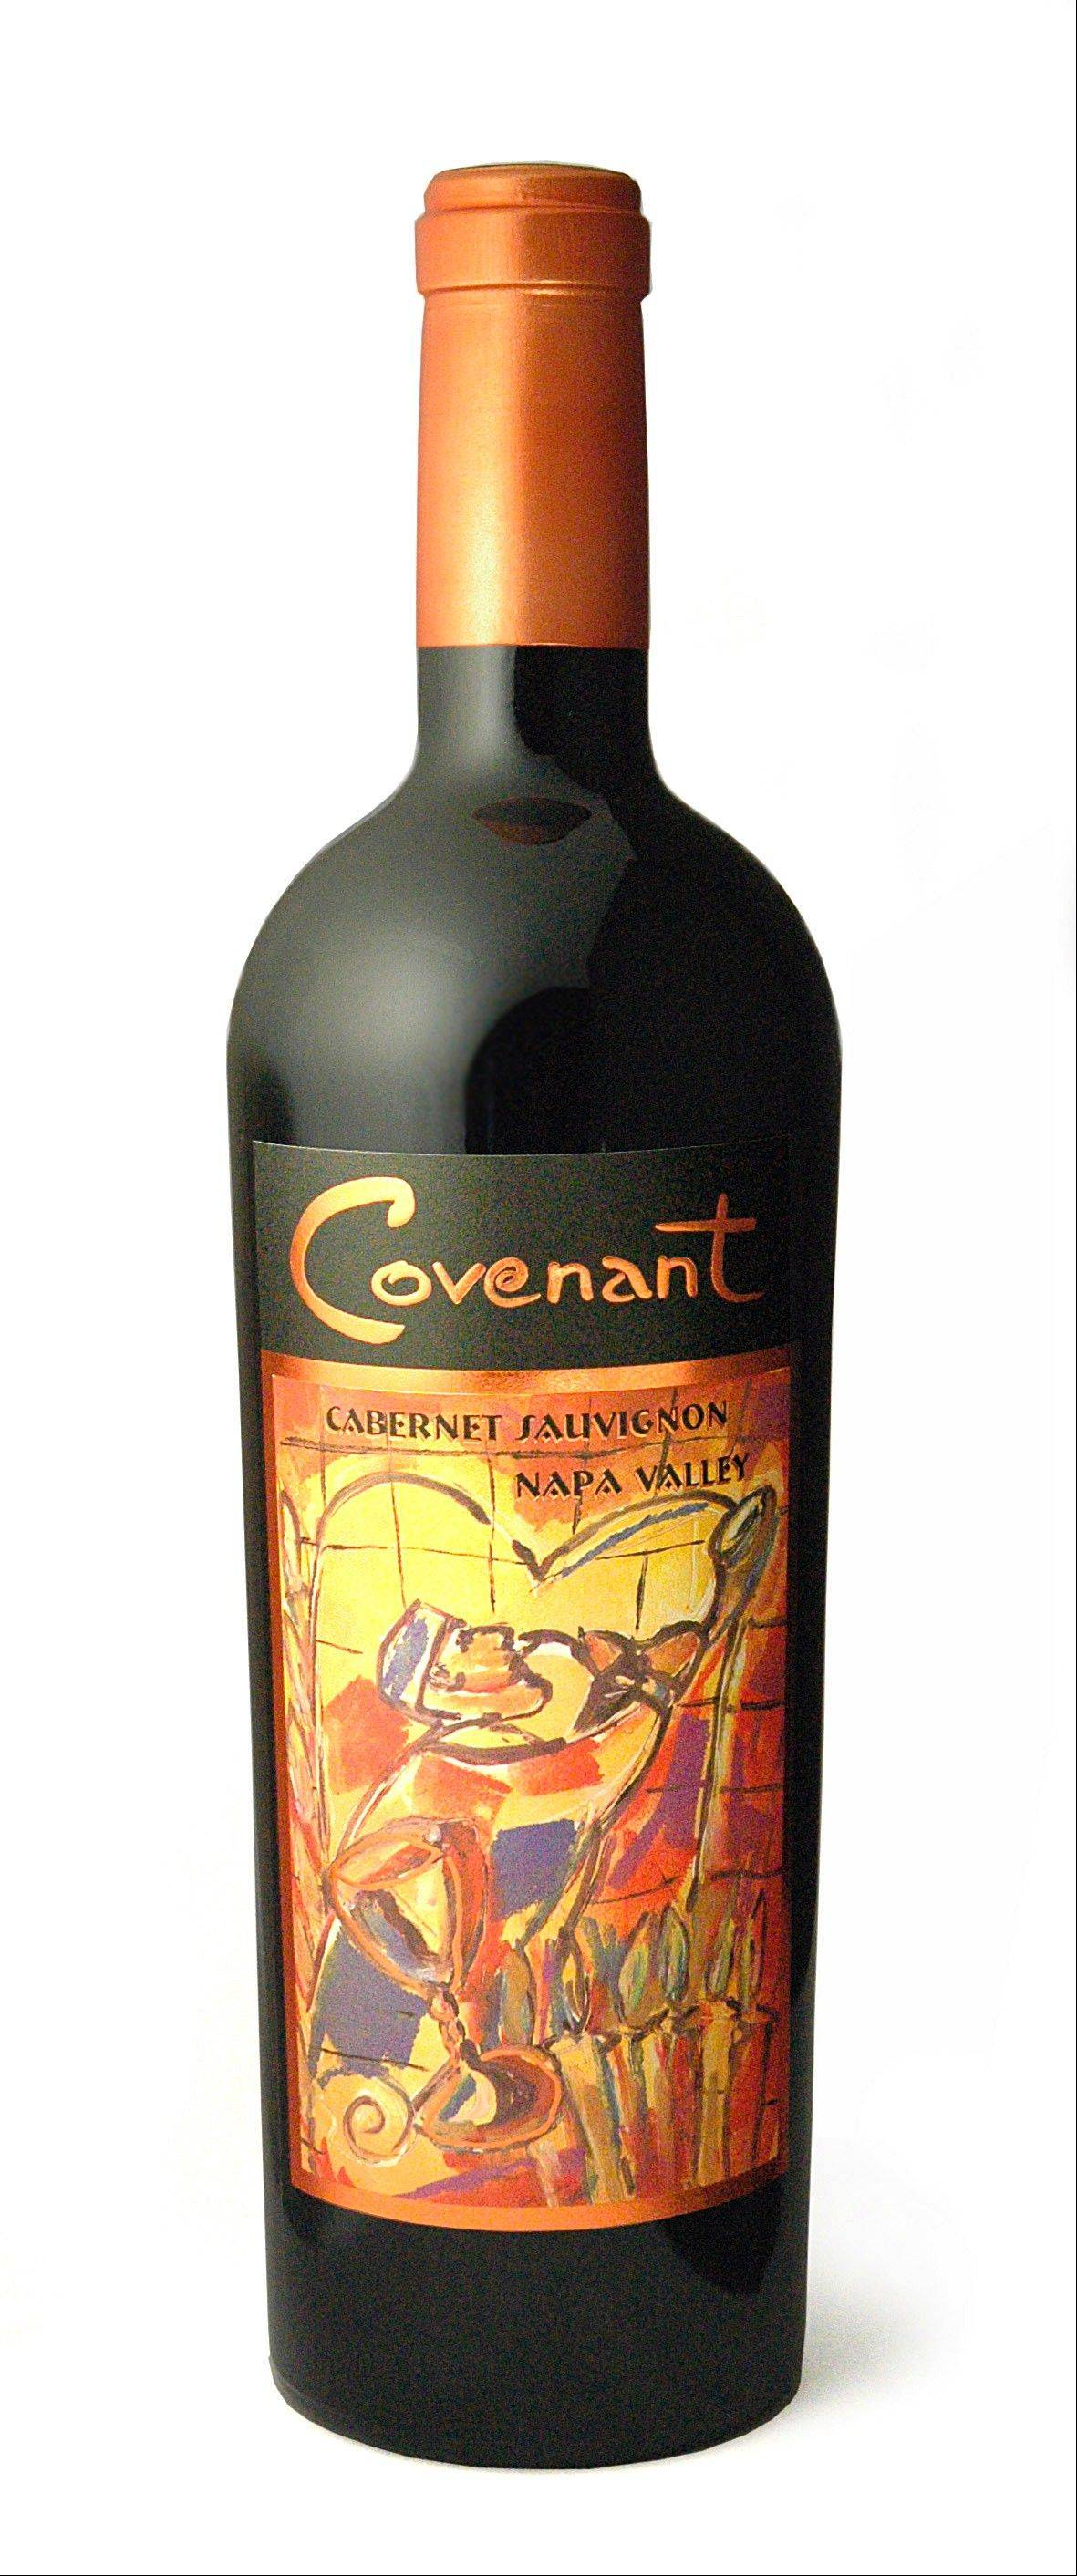 Covenant Wines produces kosher wines like this Cabernet Sauvignon.